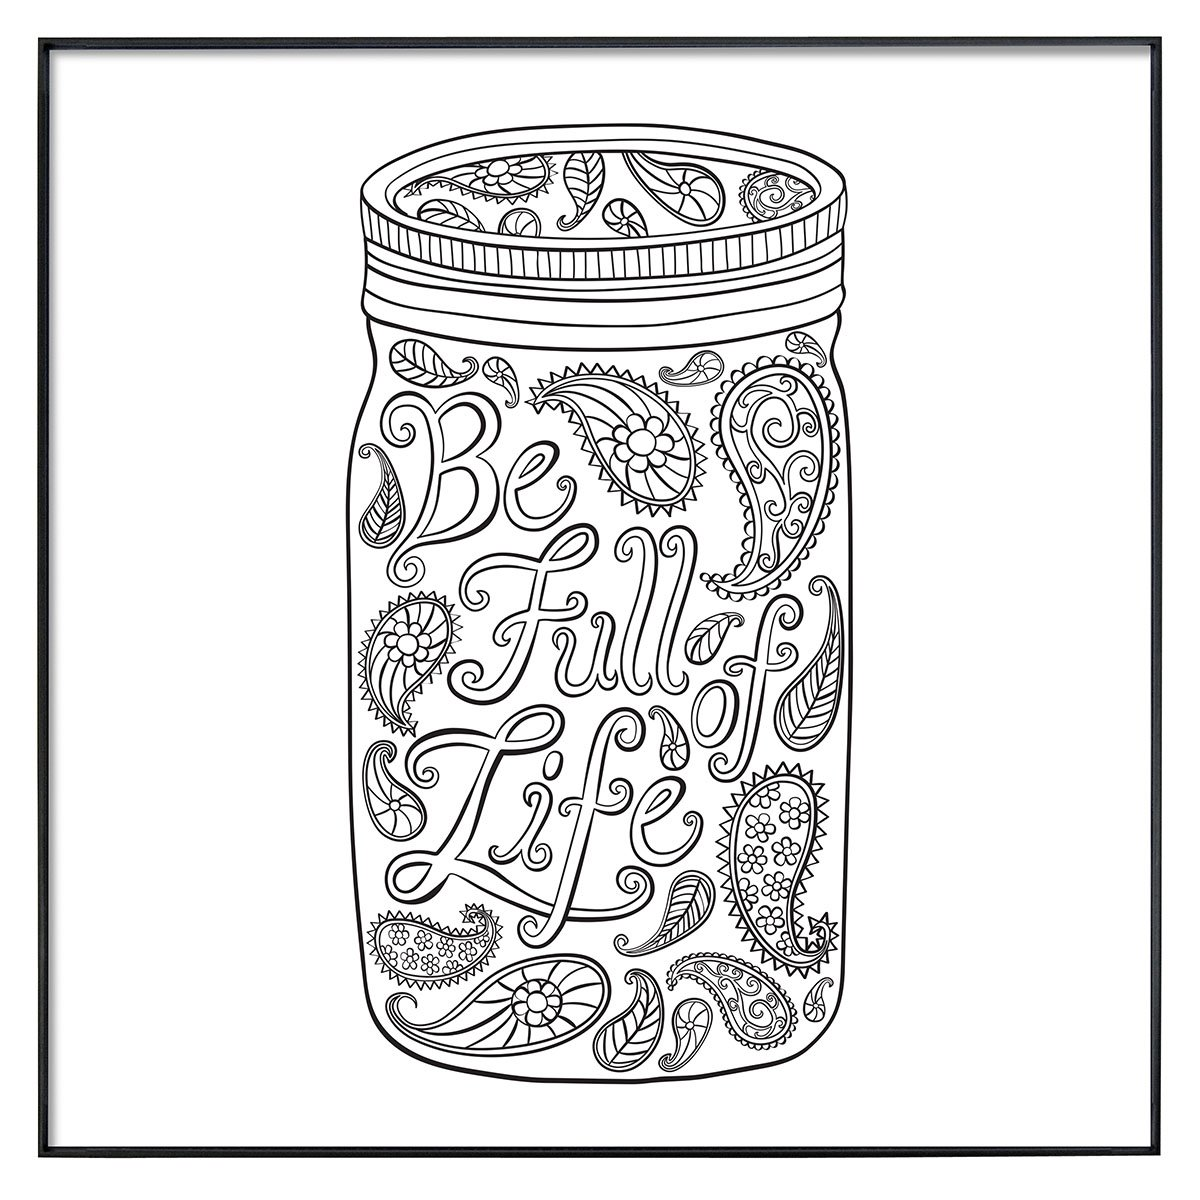 Amazon MCS Time Out Color In Framed Adult Coloring Pages Mason Jar Designs Includes Format Frames 12 By Inch